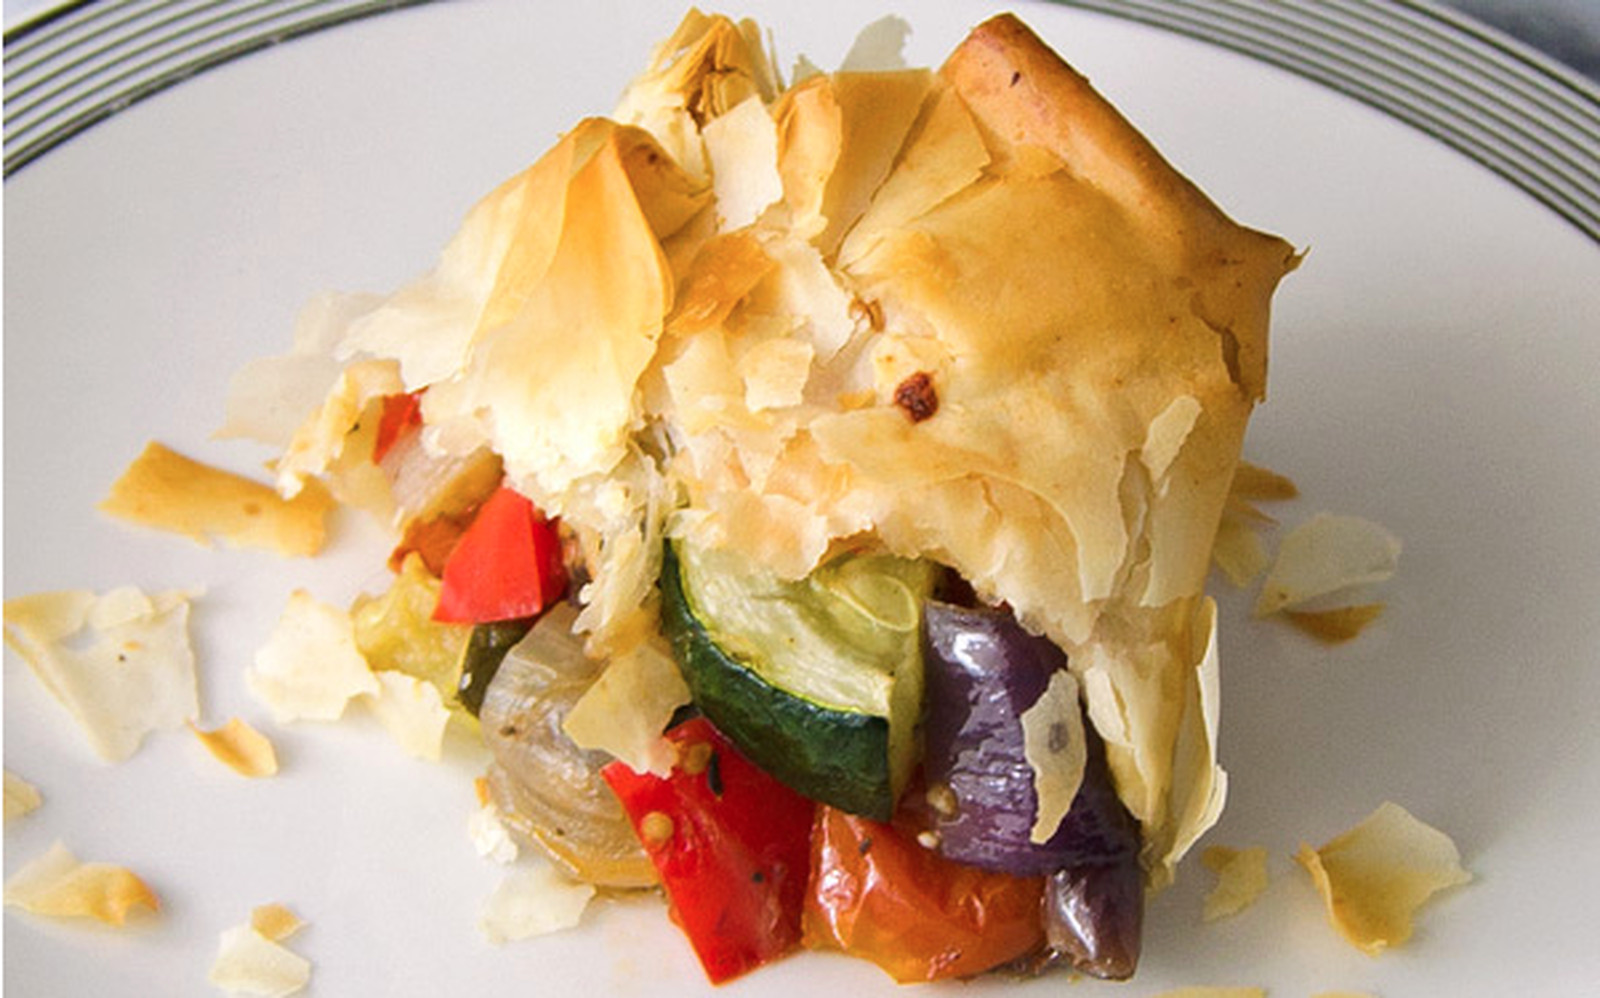 Vegan Roasted Vegetable Phyllo Bundles